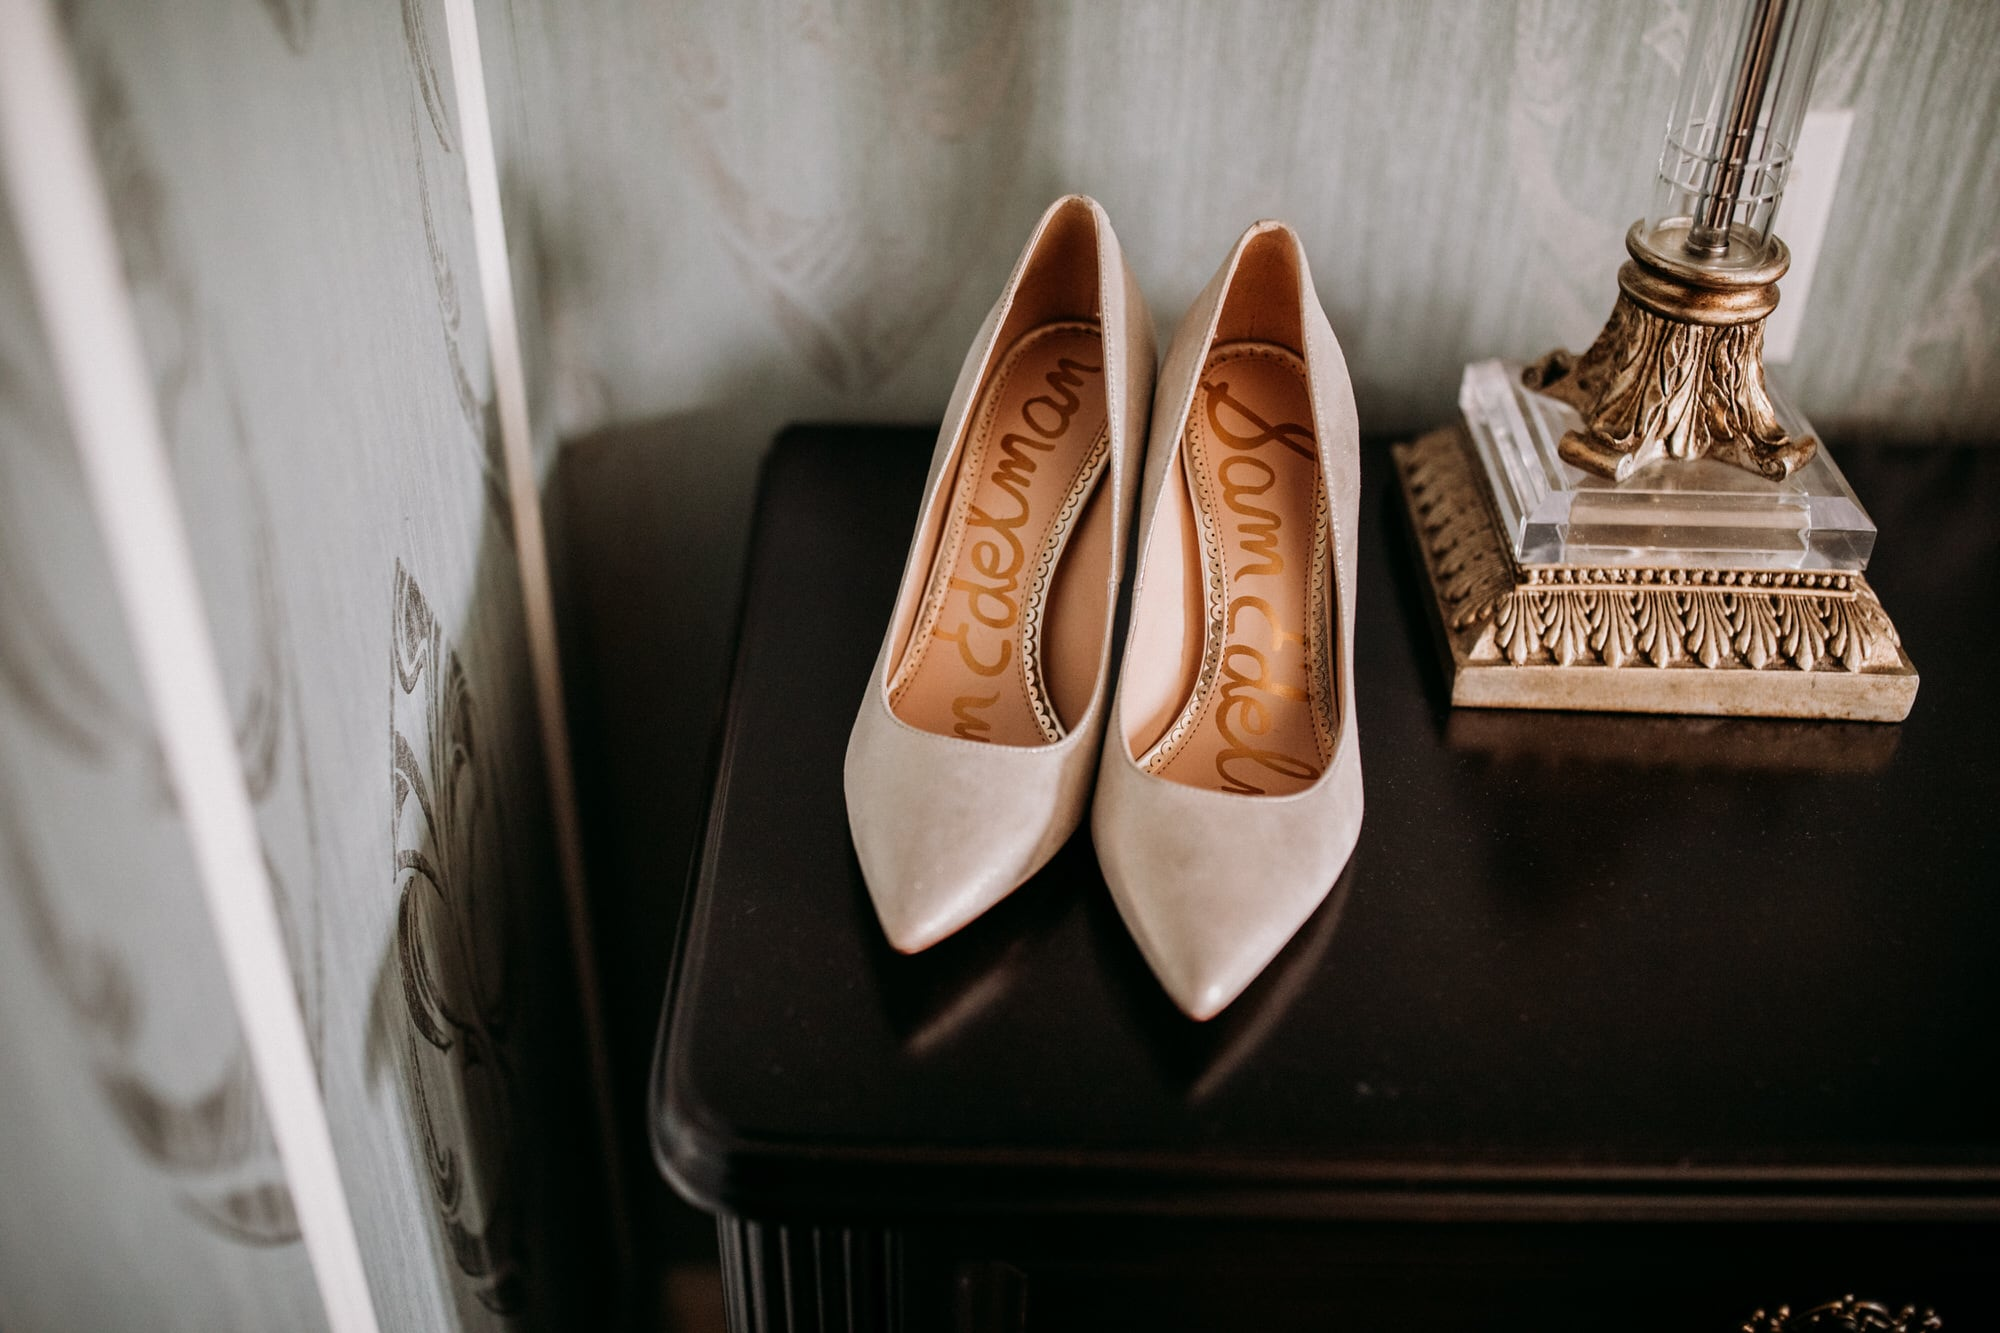 Entrepots Dominion Wedding In Montreal - Sam Edelman Wedding Shoes - Wedding Photographer Brent Calis